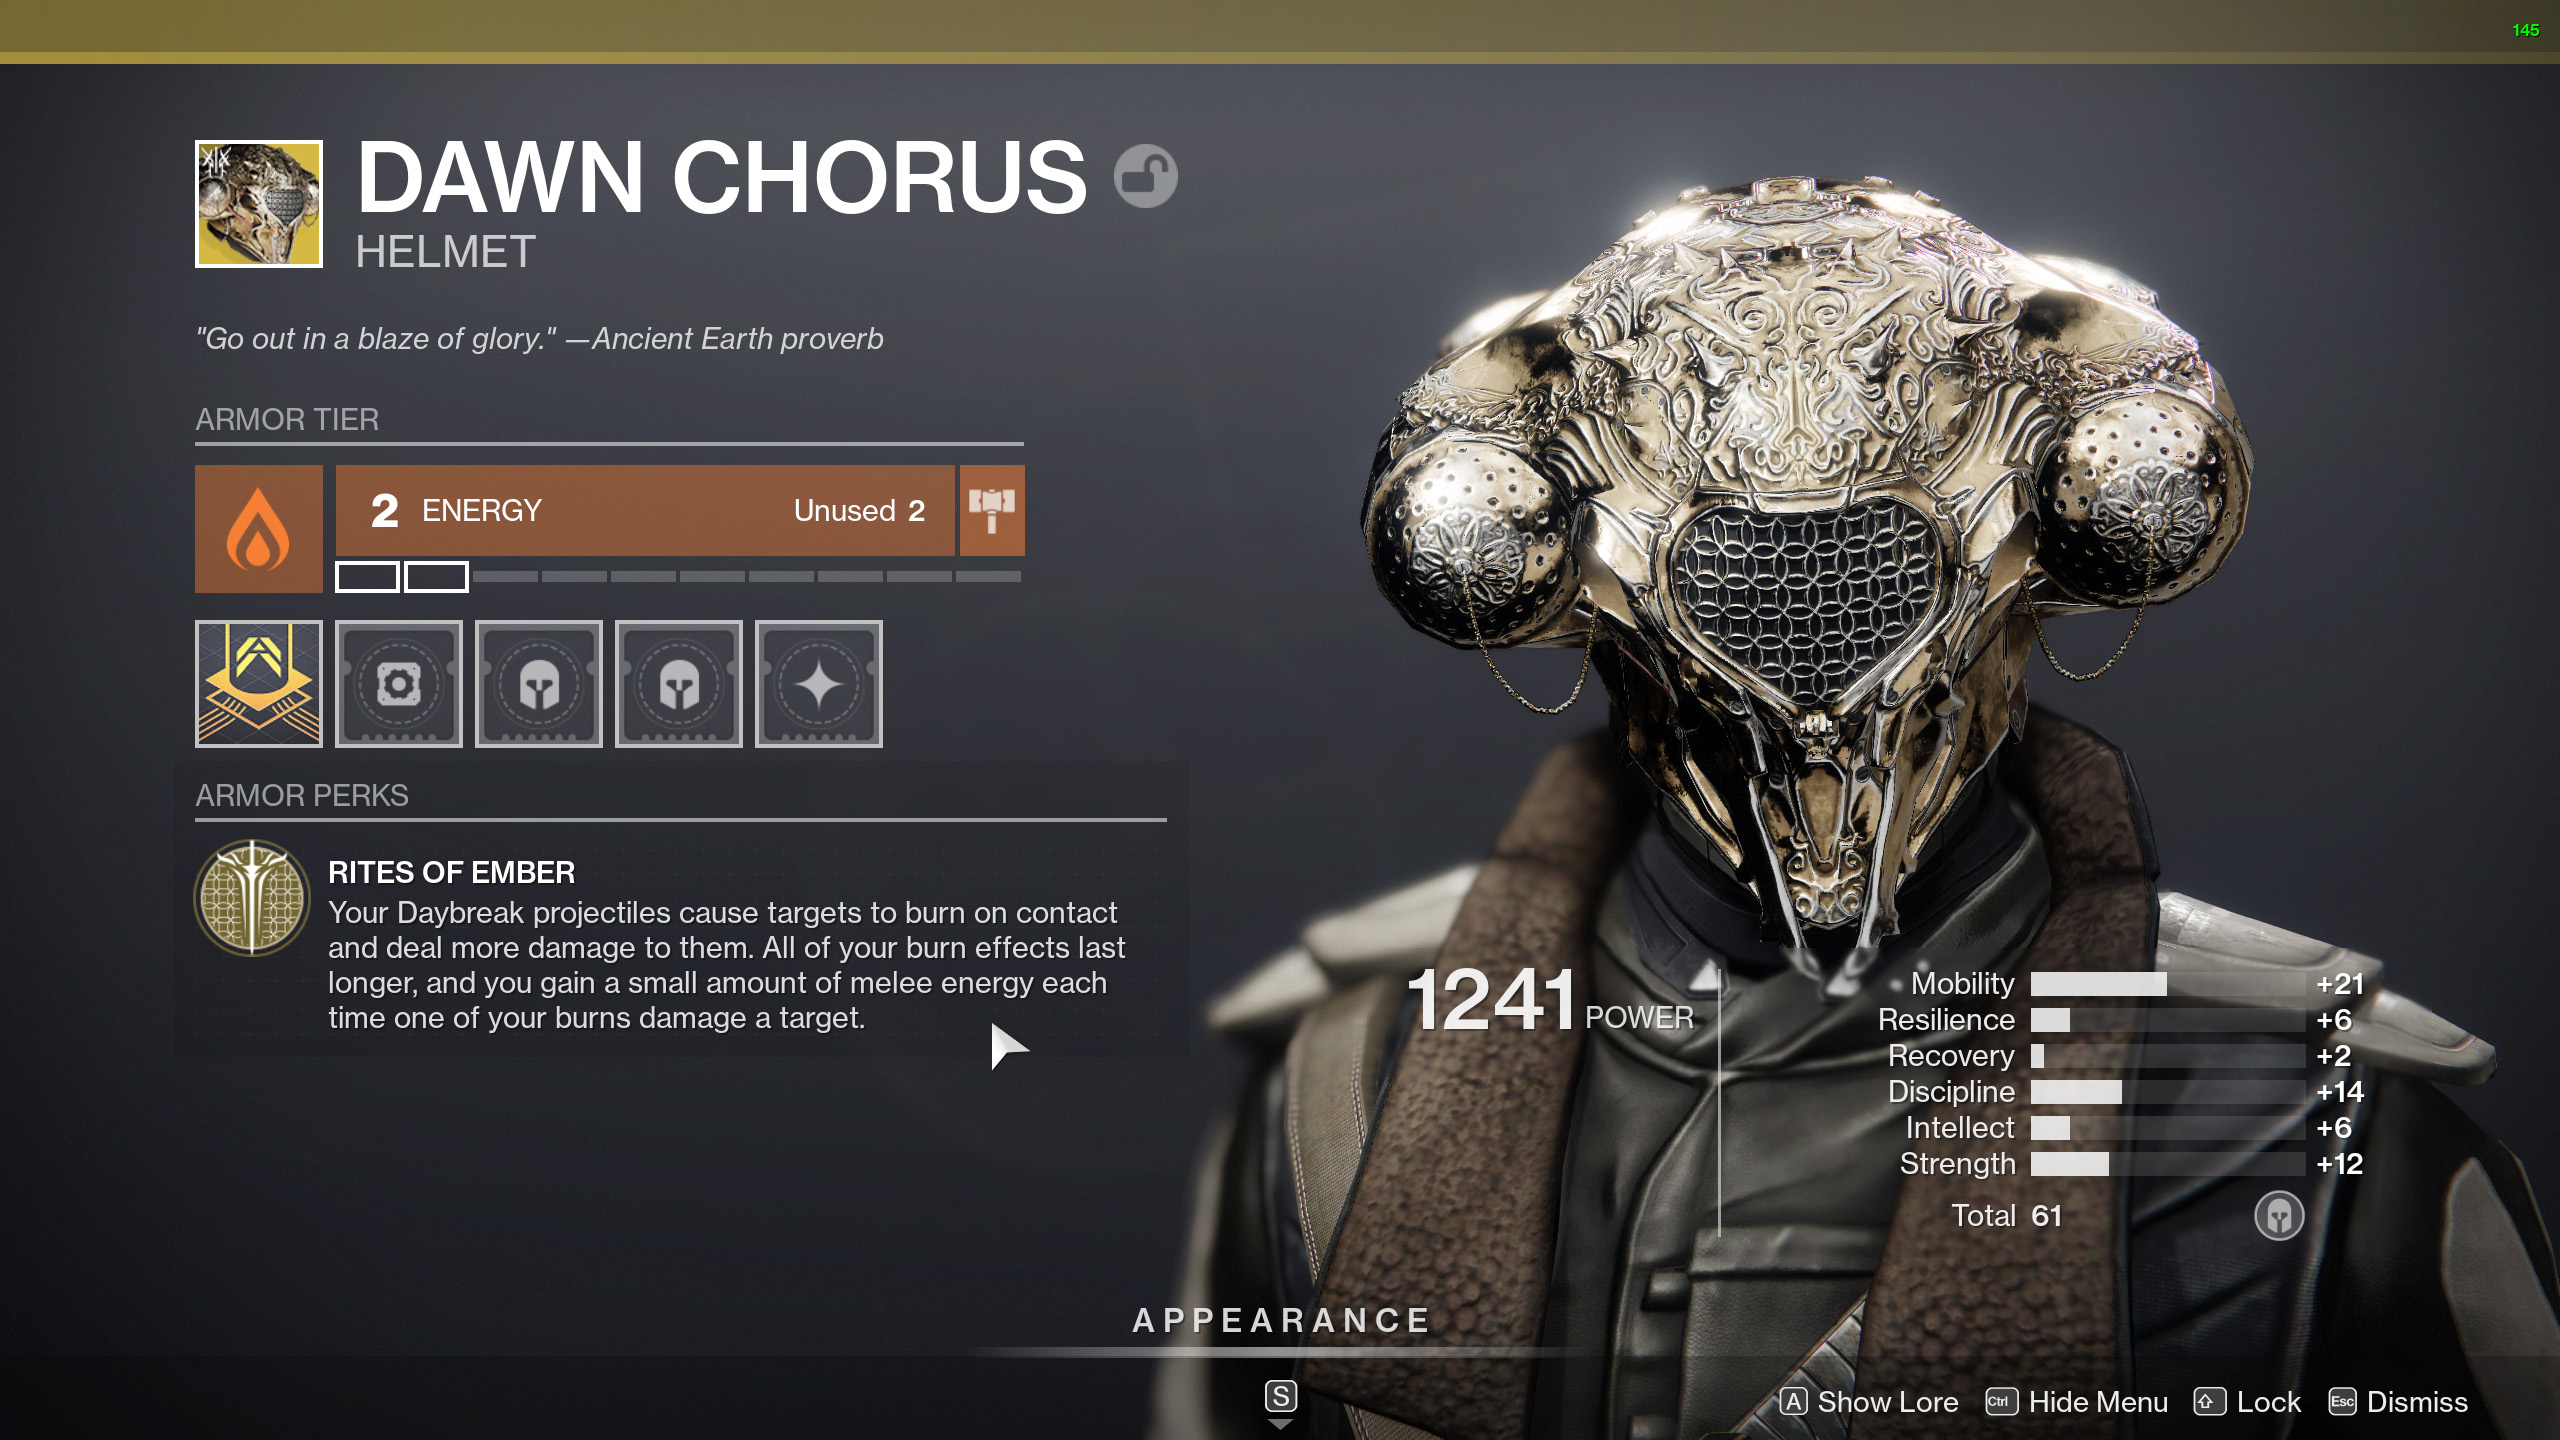 destiny 2 dawn chorus rites of ember